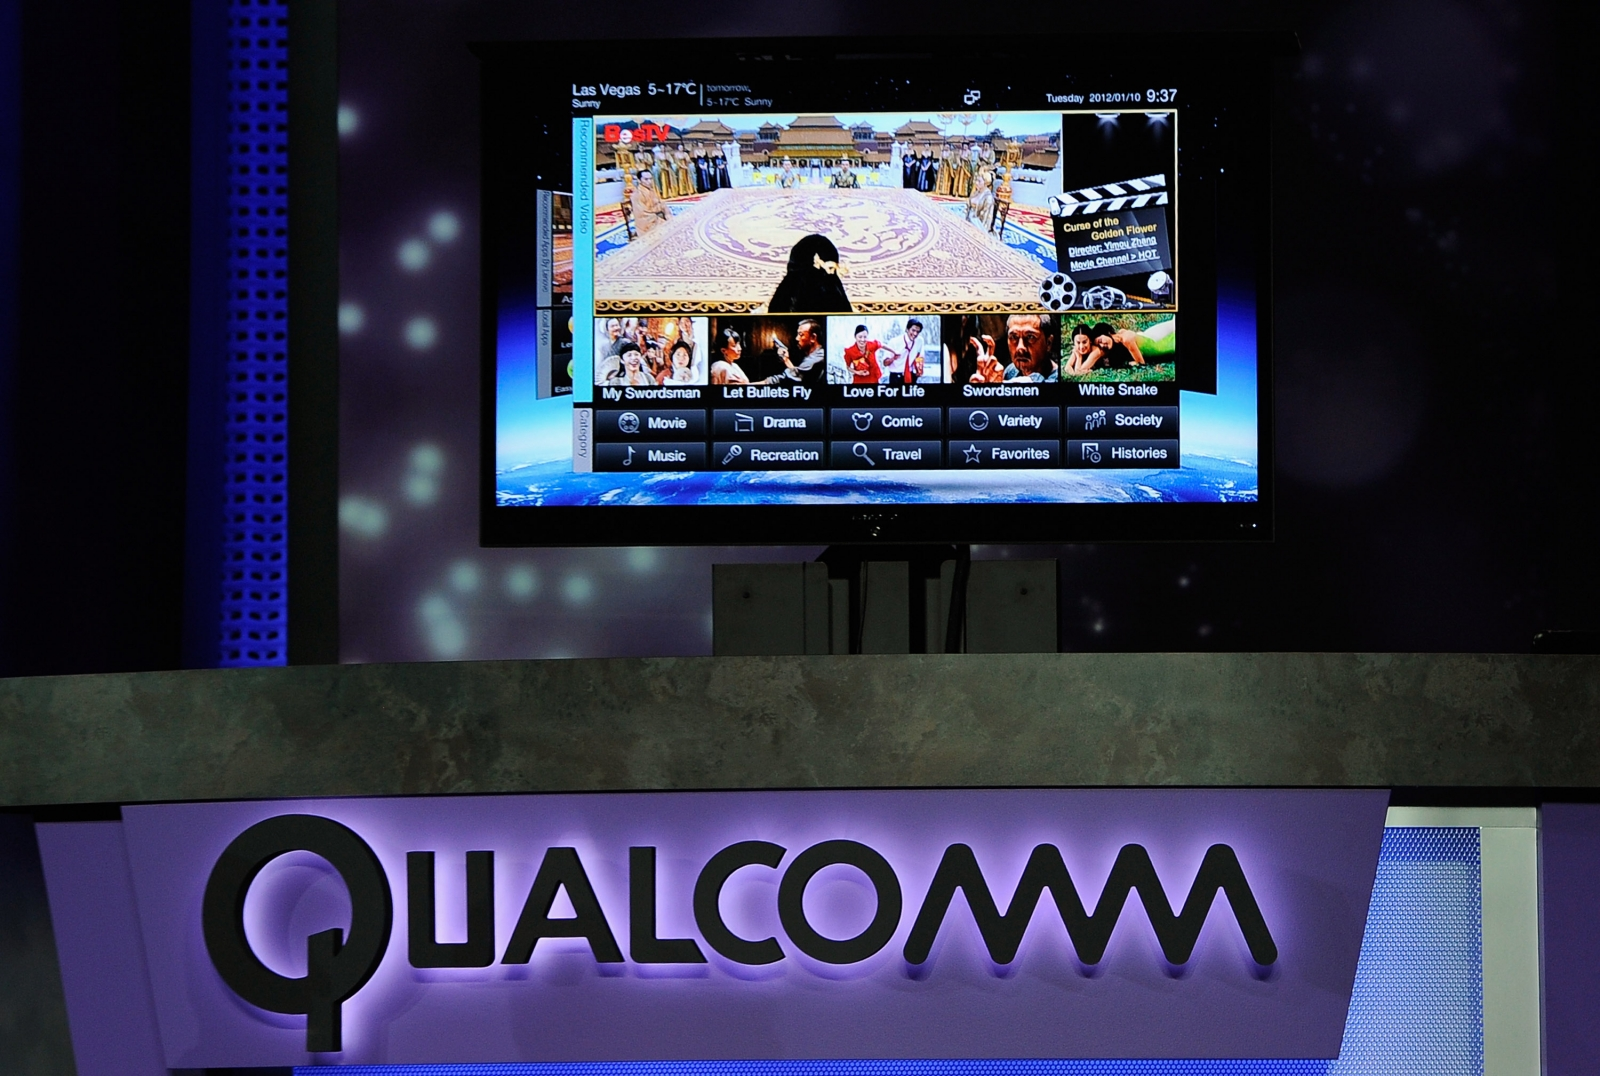 Qualcomm could face 1 trillion won fine